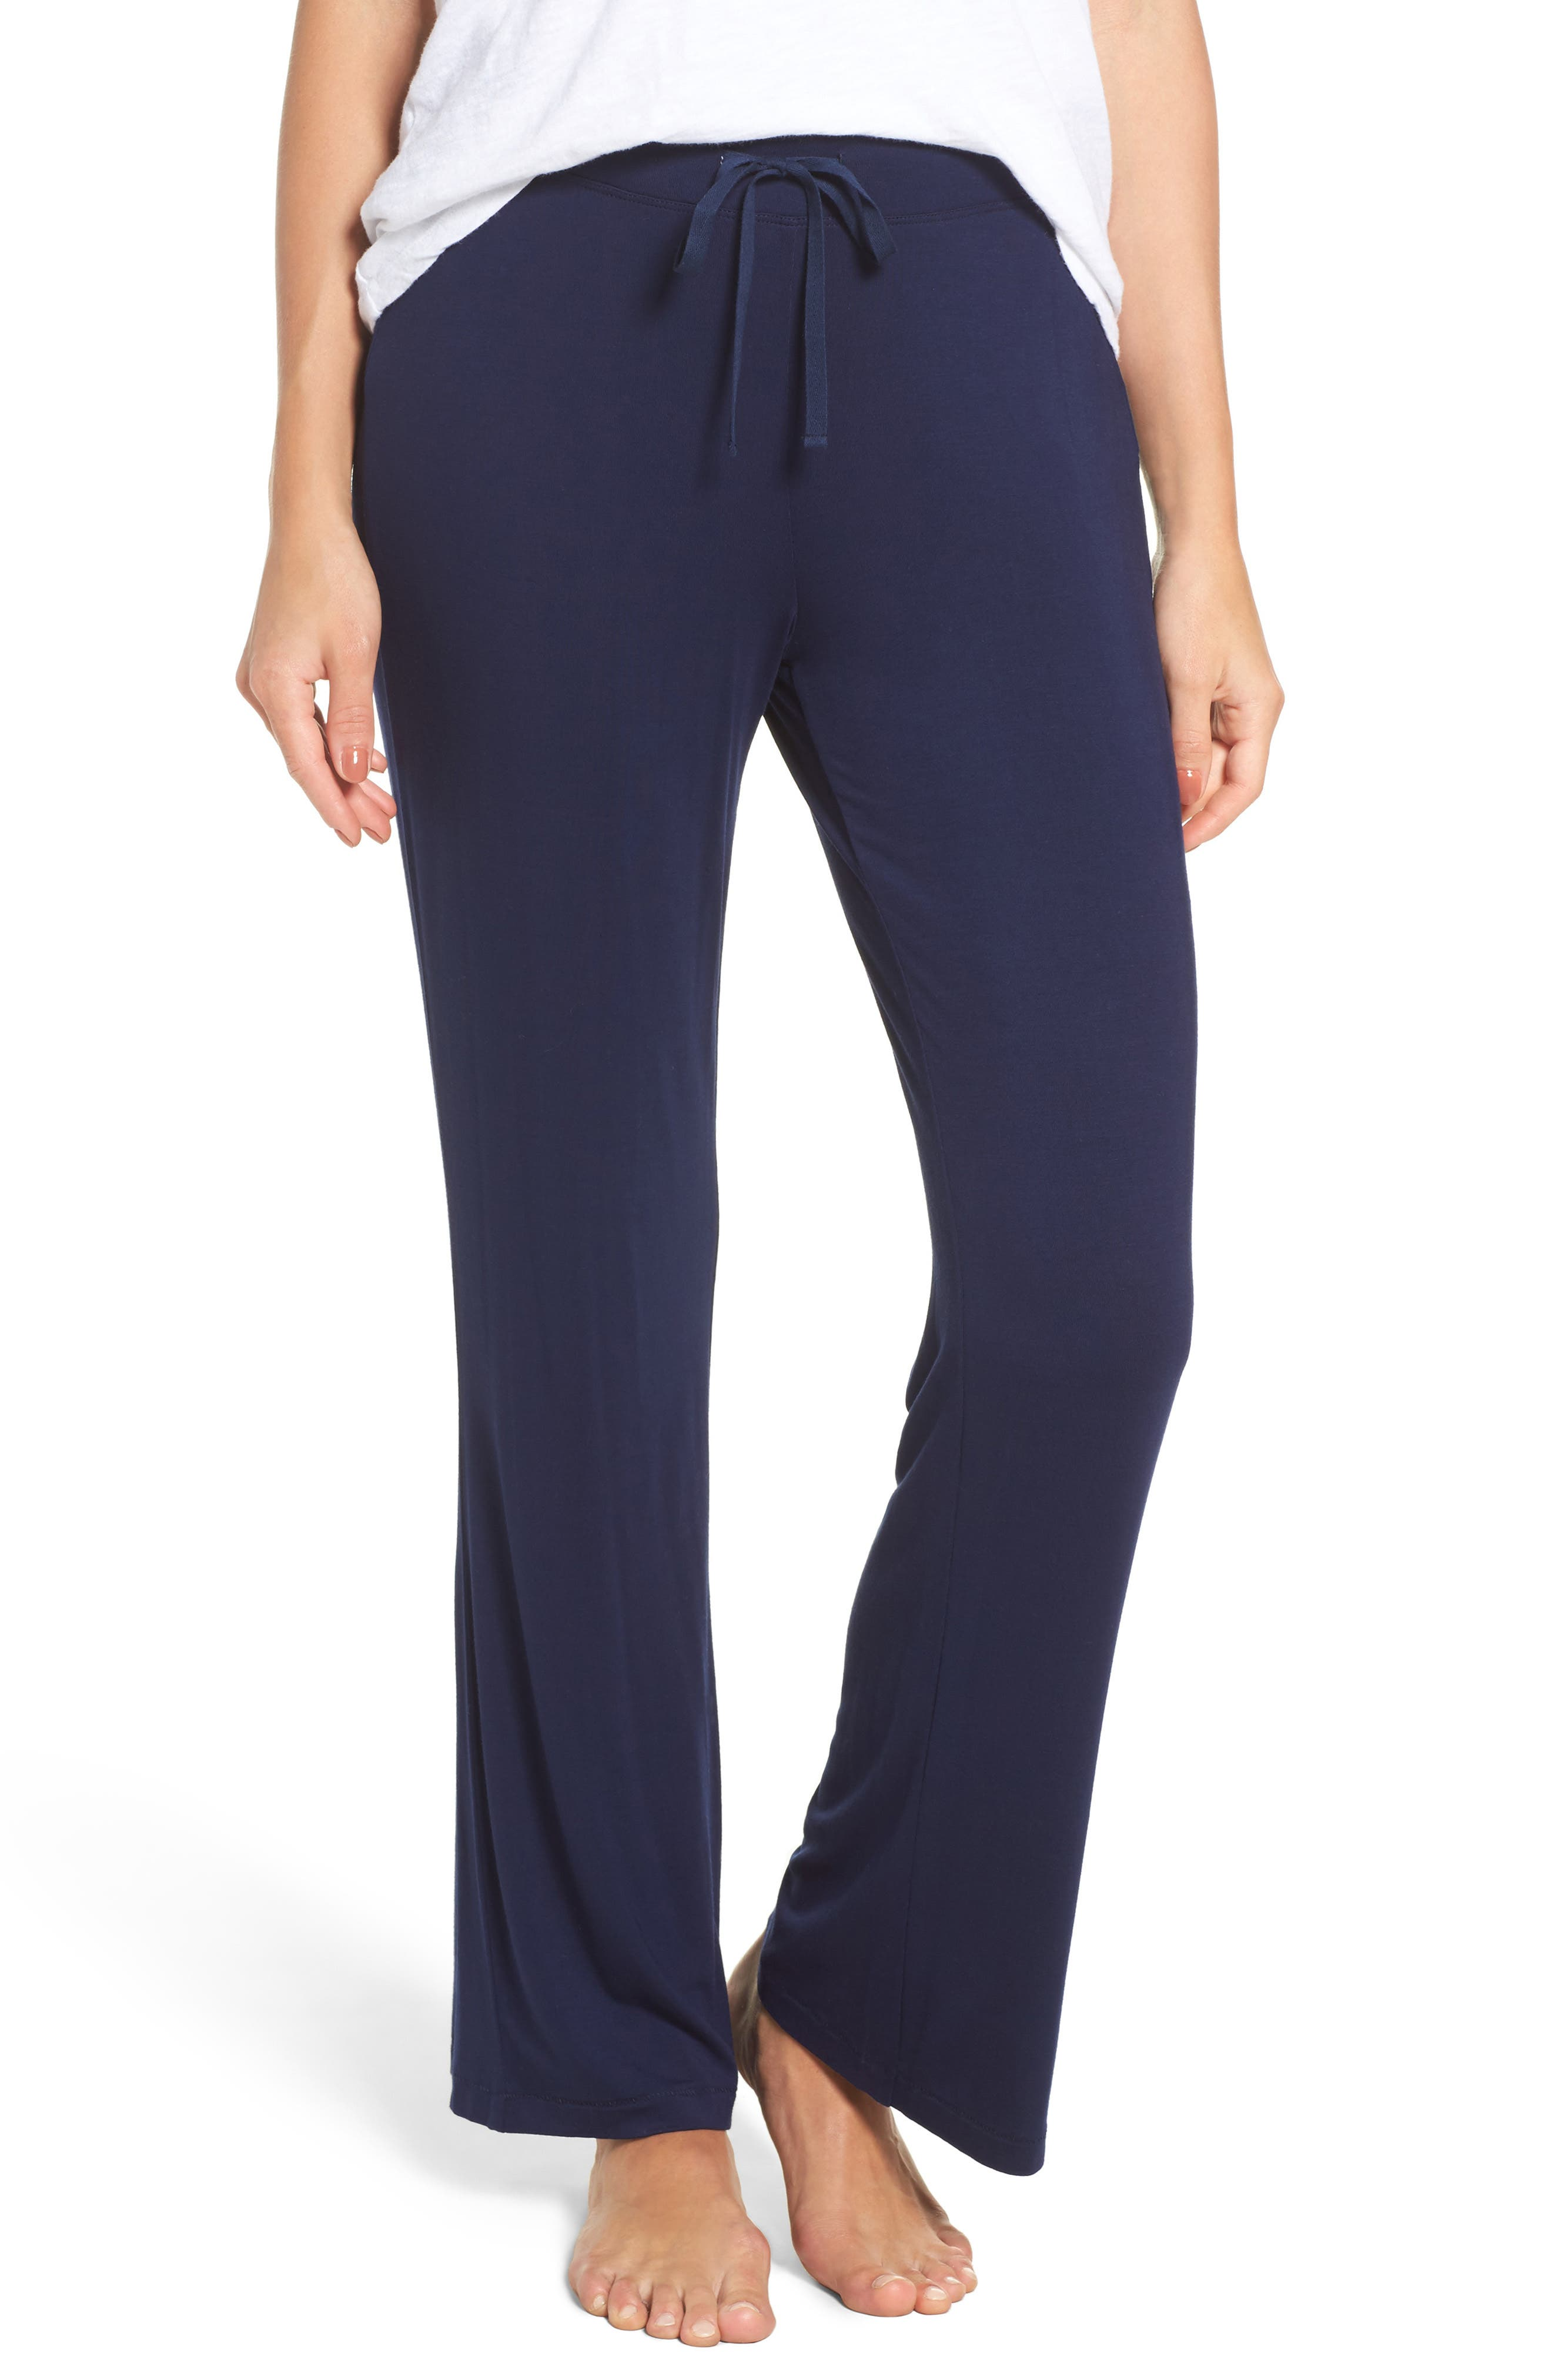 Polly Lounge Pants,                         Main,                         color, Navy